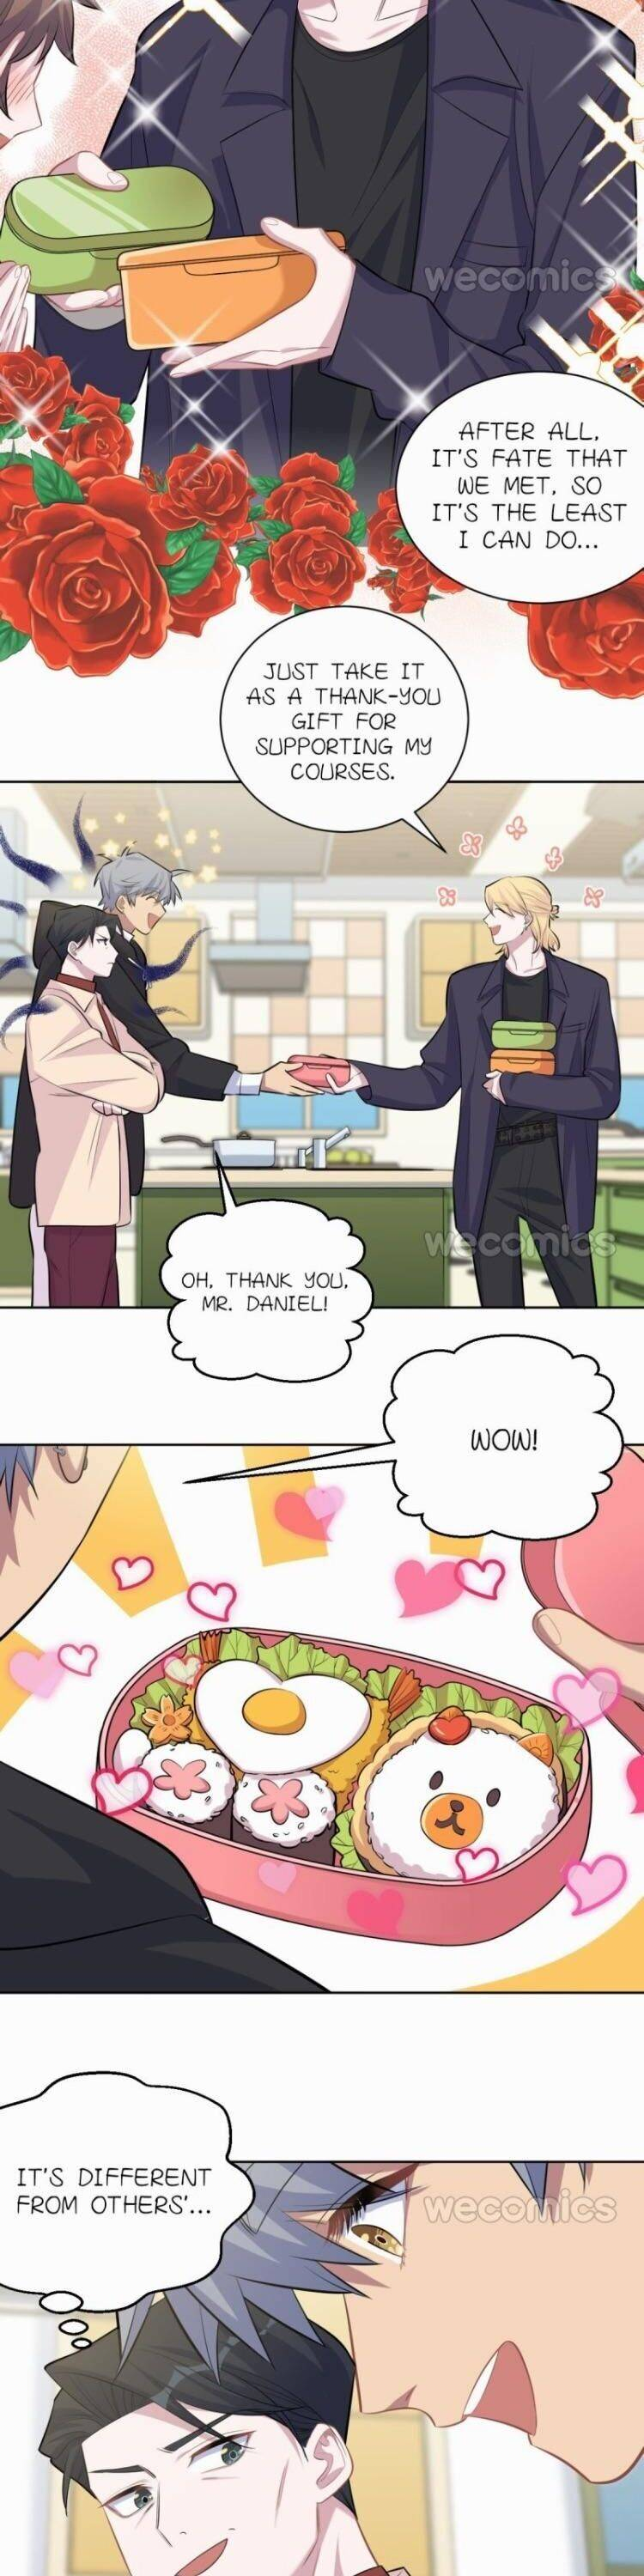 I Married My Father-In-Law - chapter 83 - #2